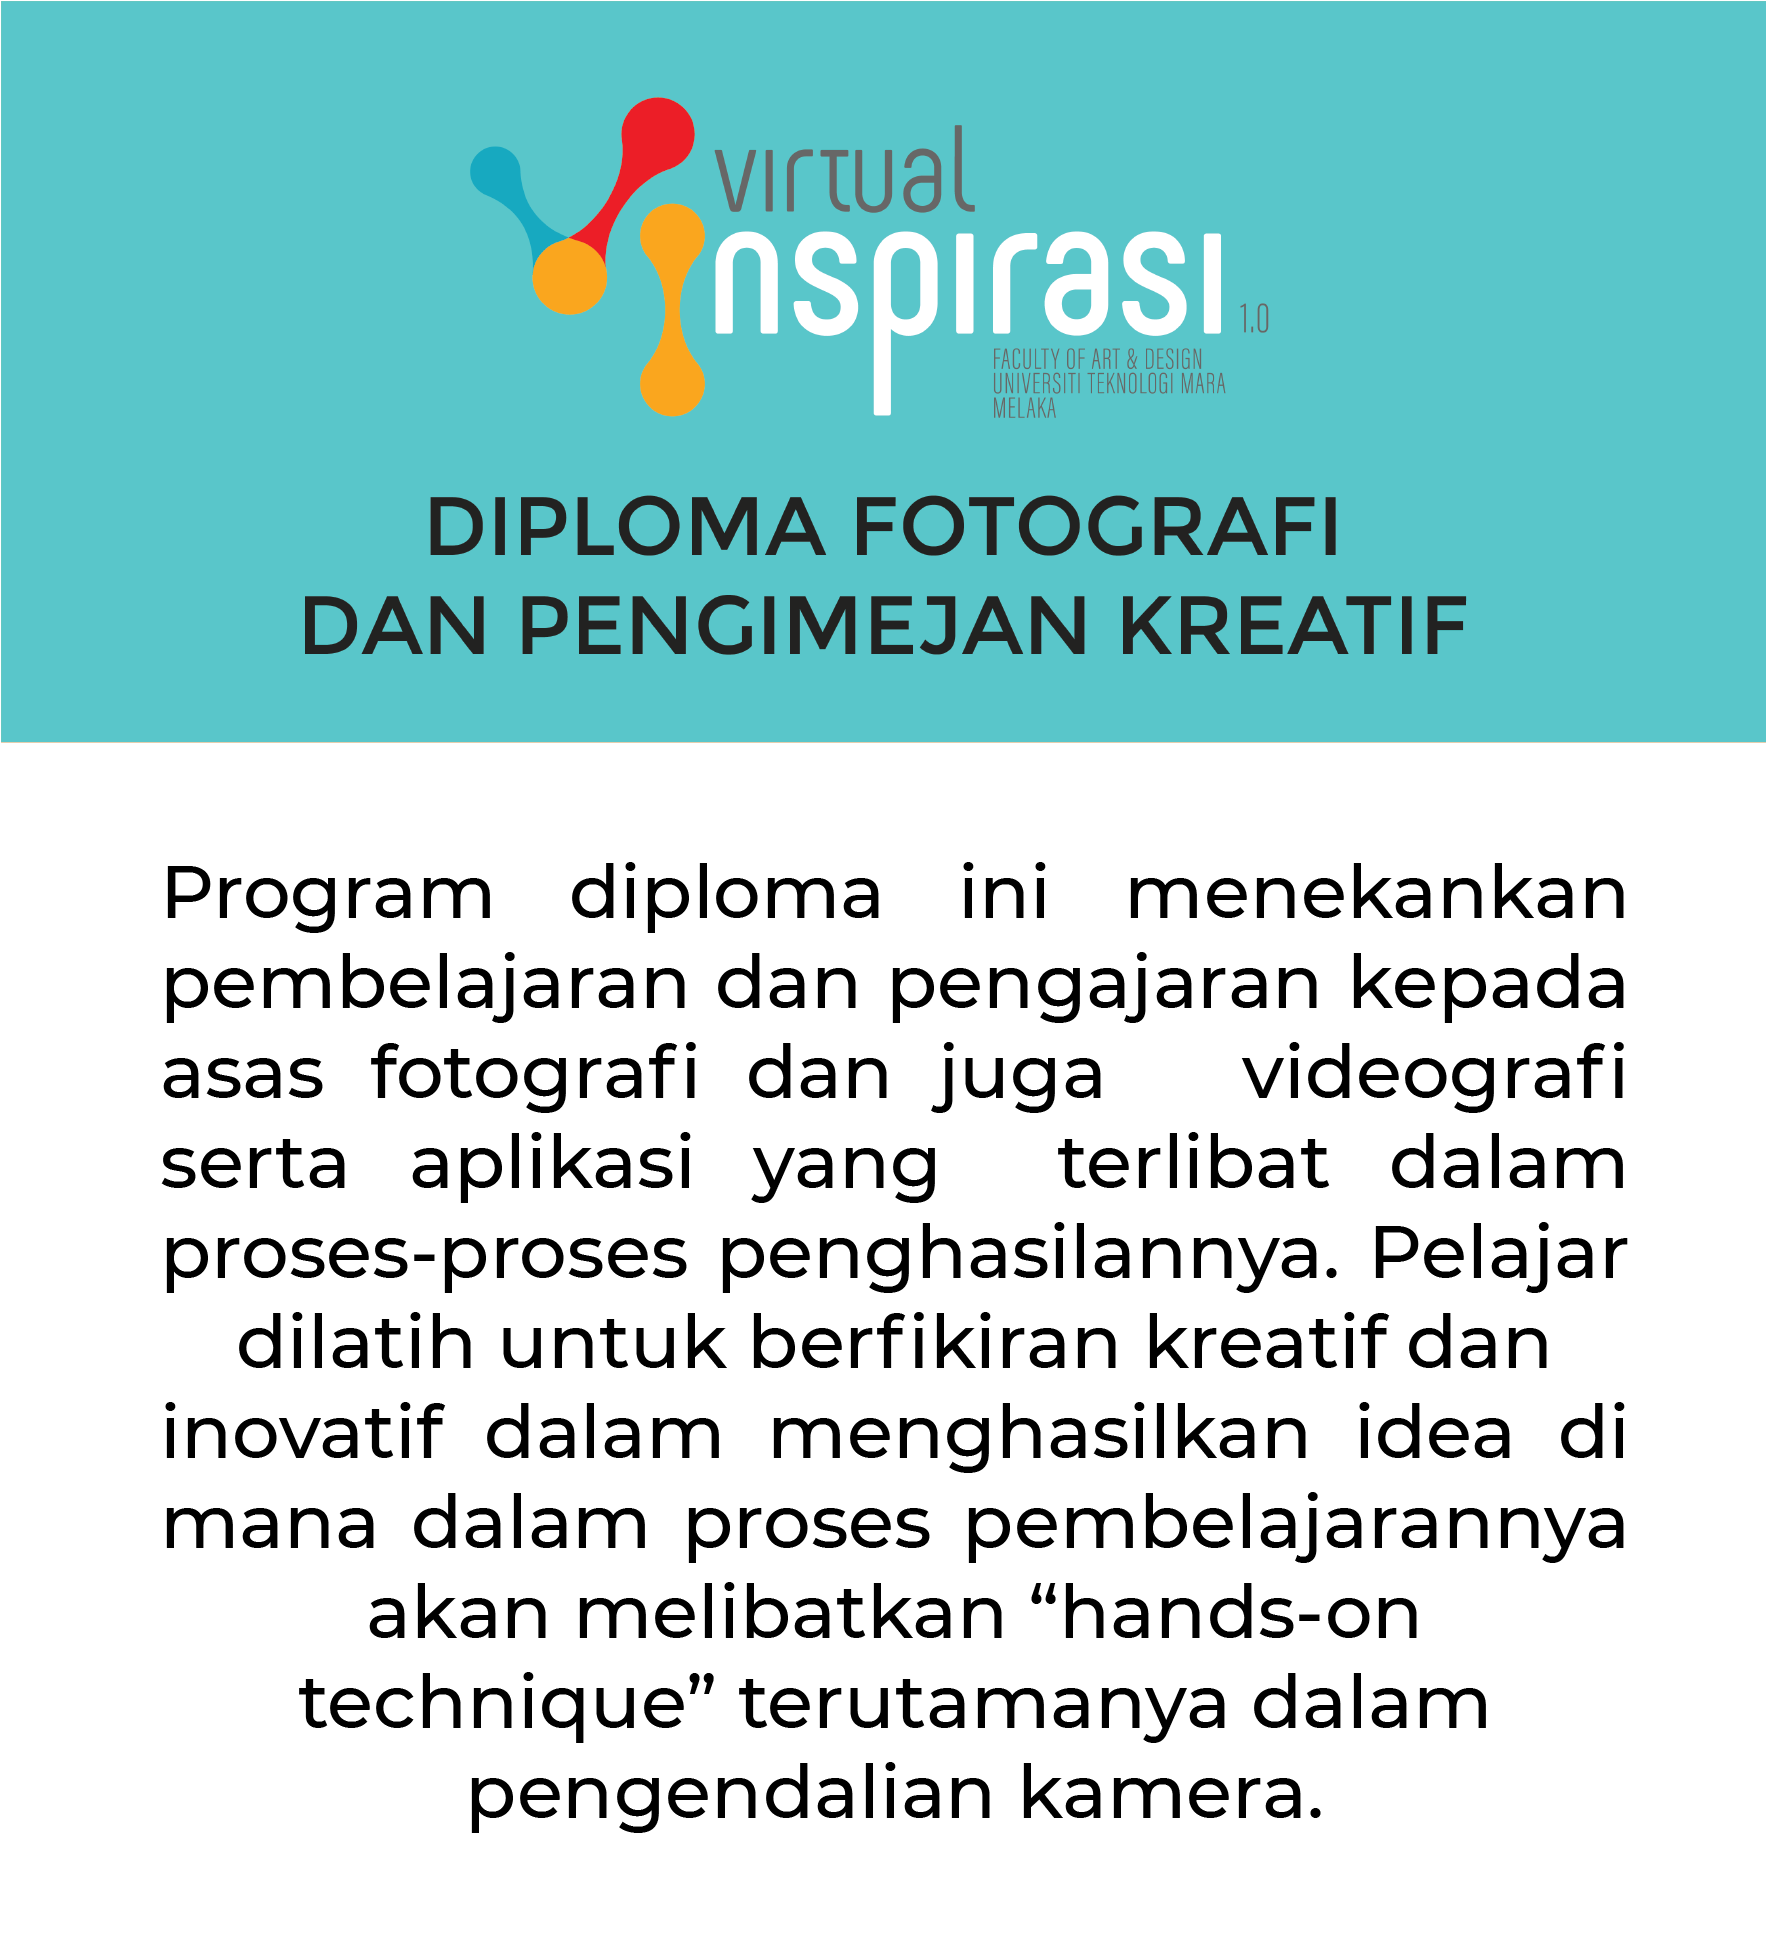 DIPLOMA IN PHOTOGRAPHY AND CREATIVE IMAGING